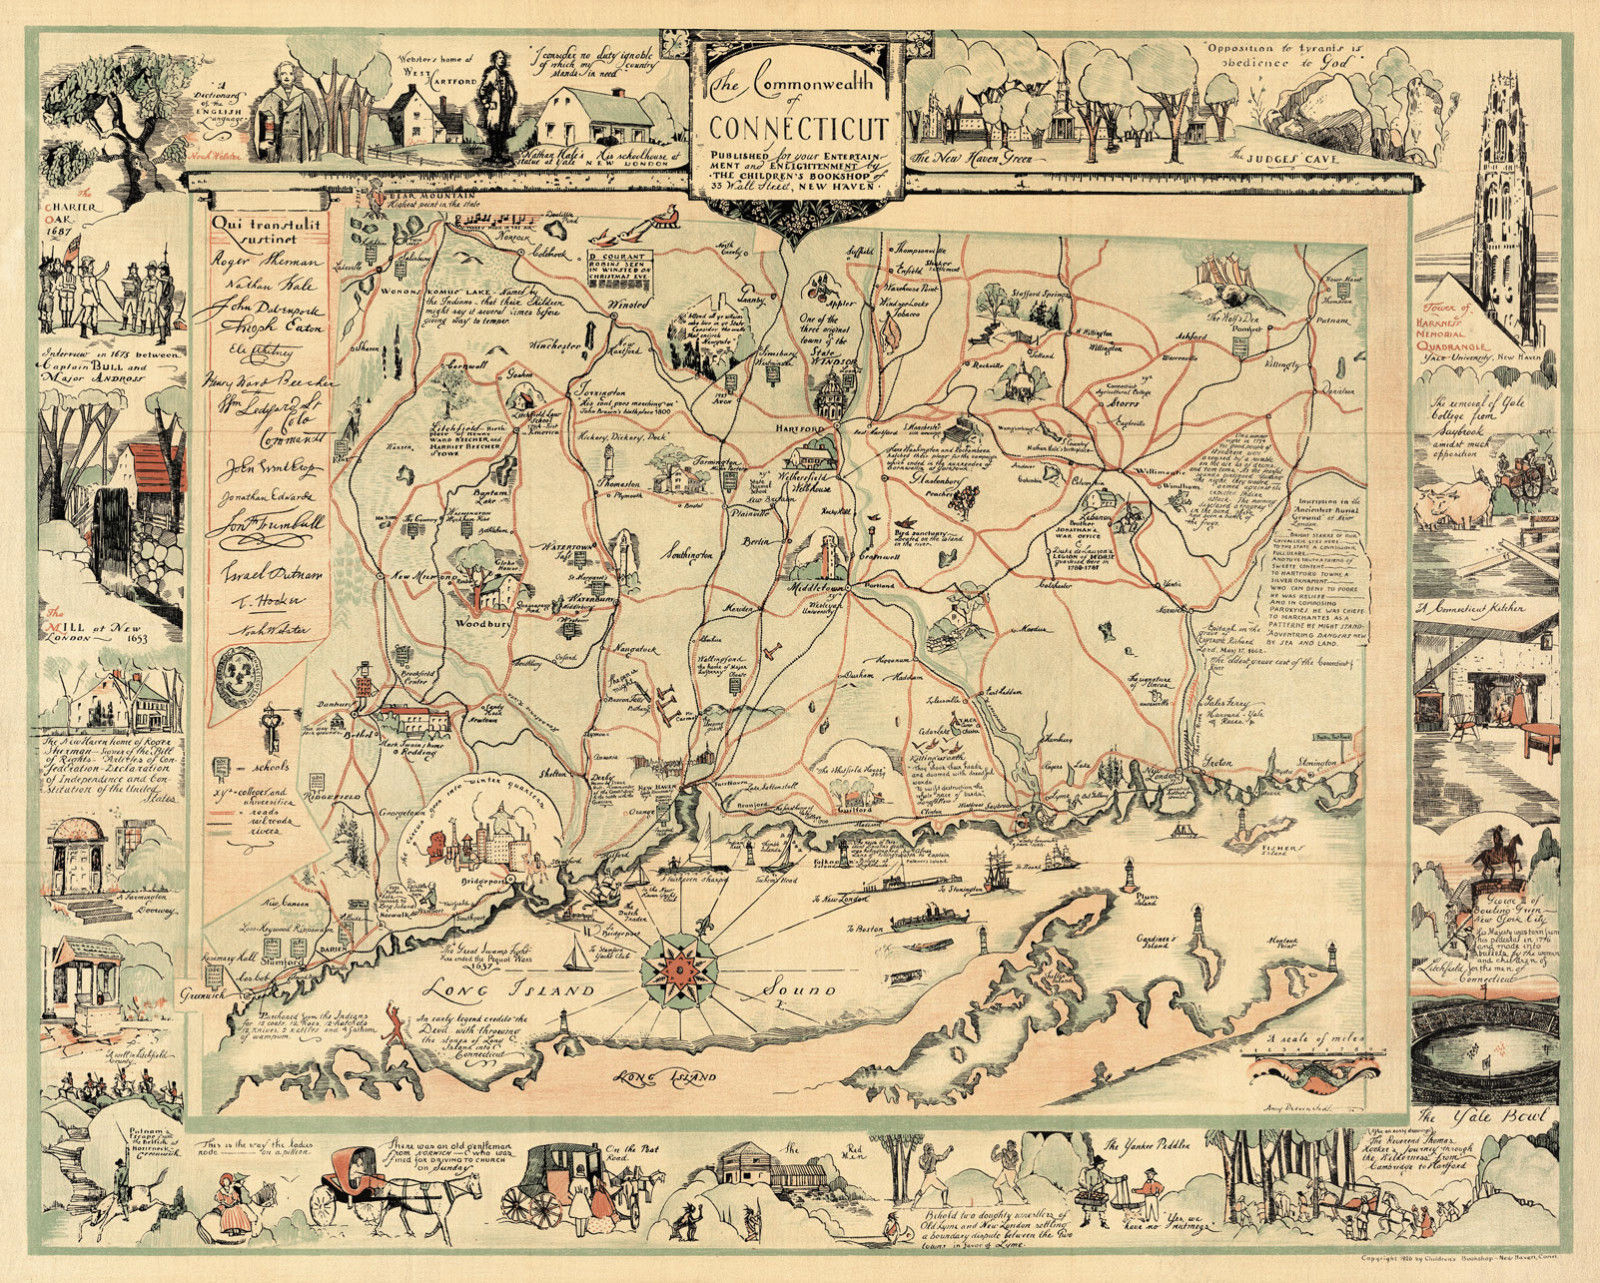 1921 Pictorial Map of New York City Historical Vintage Genealogy Wall Art Poster